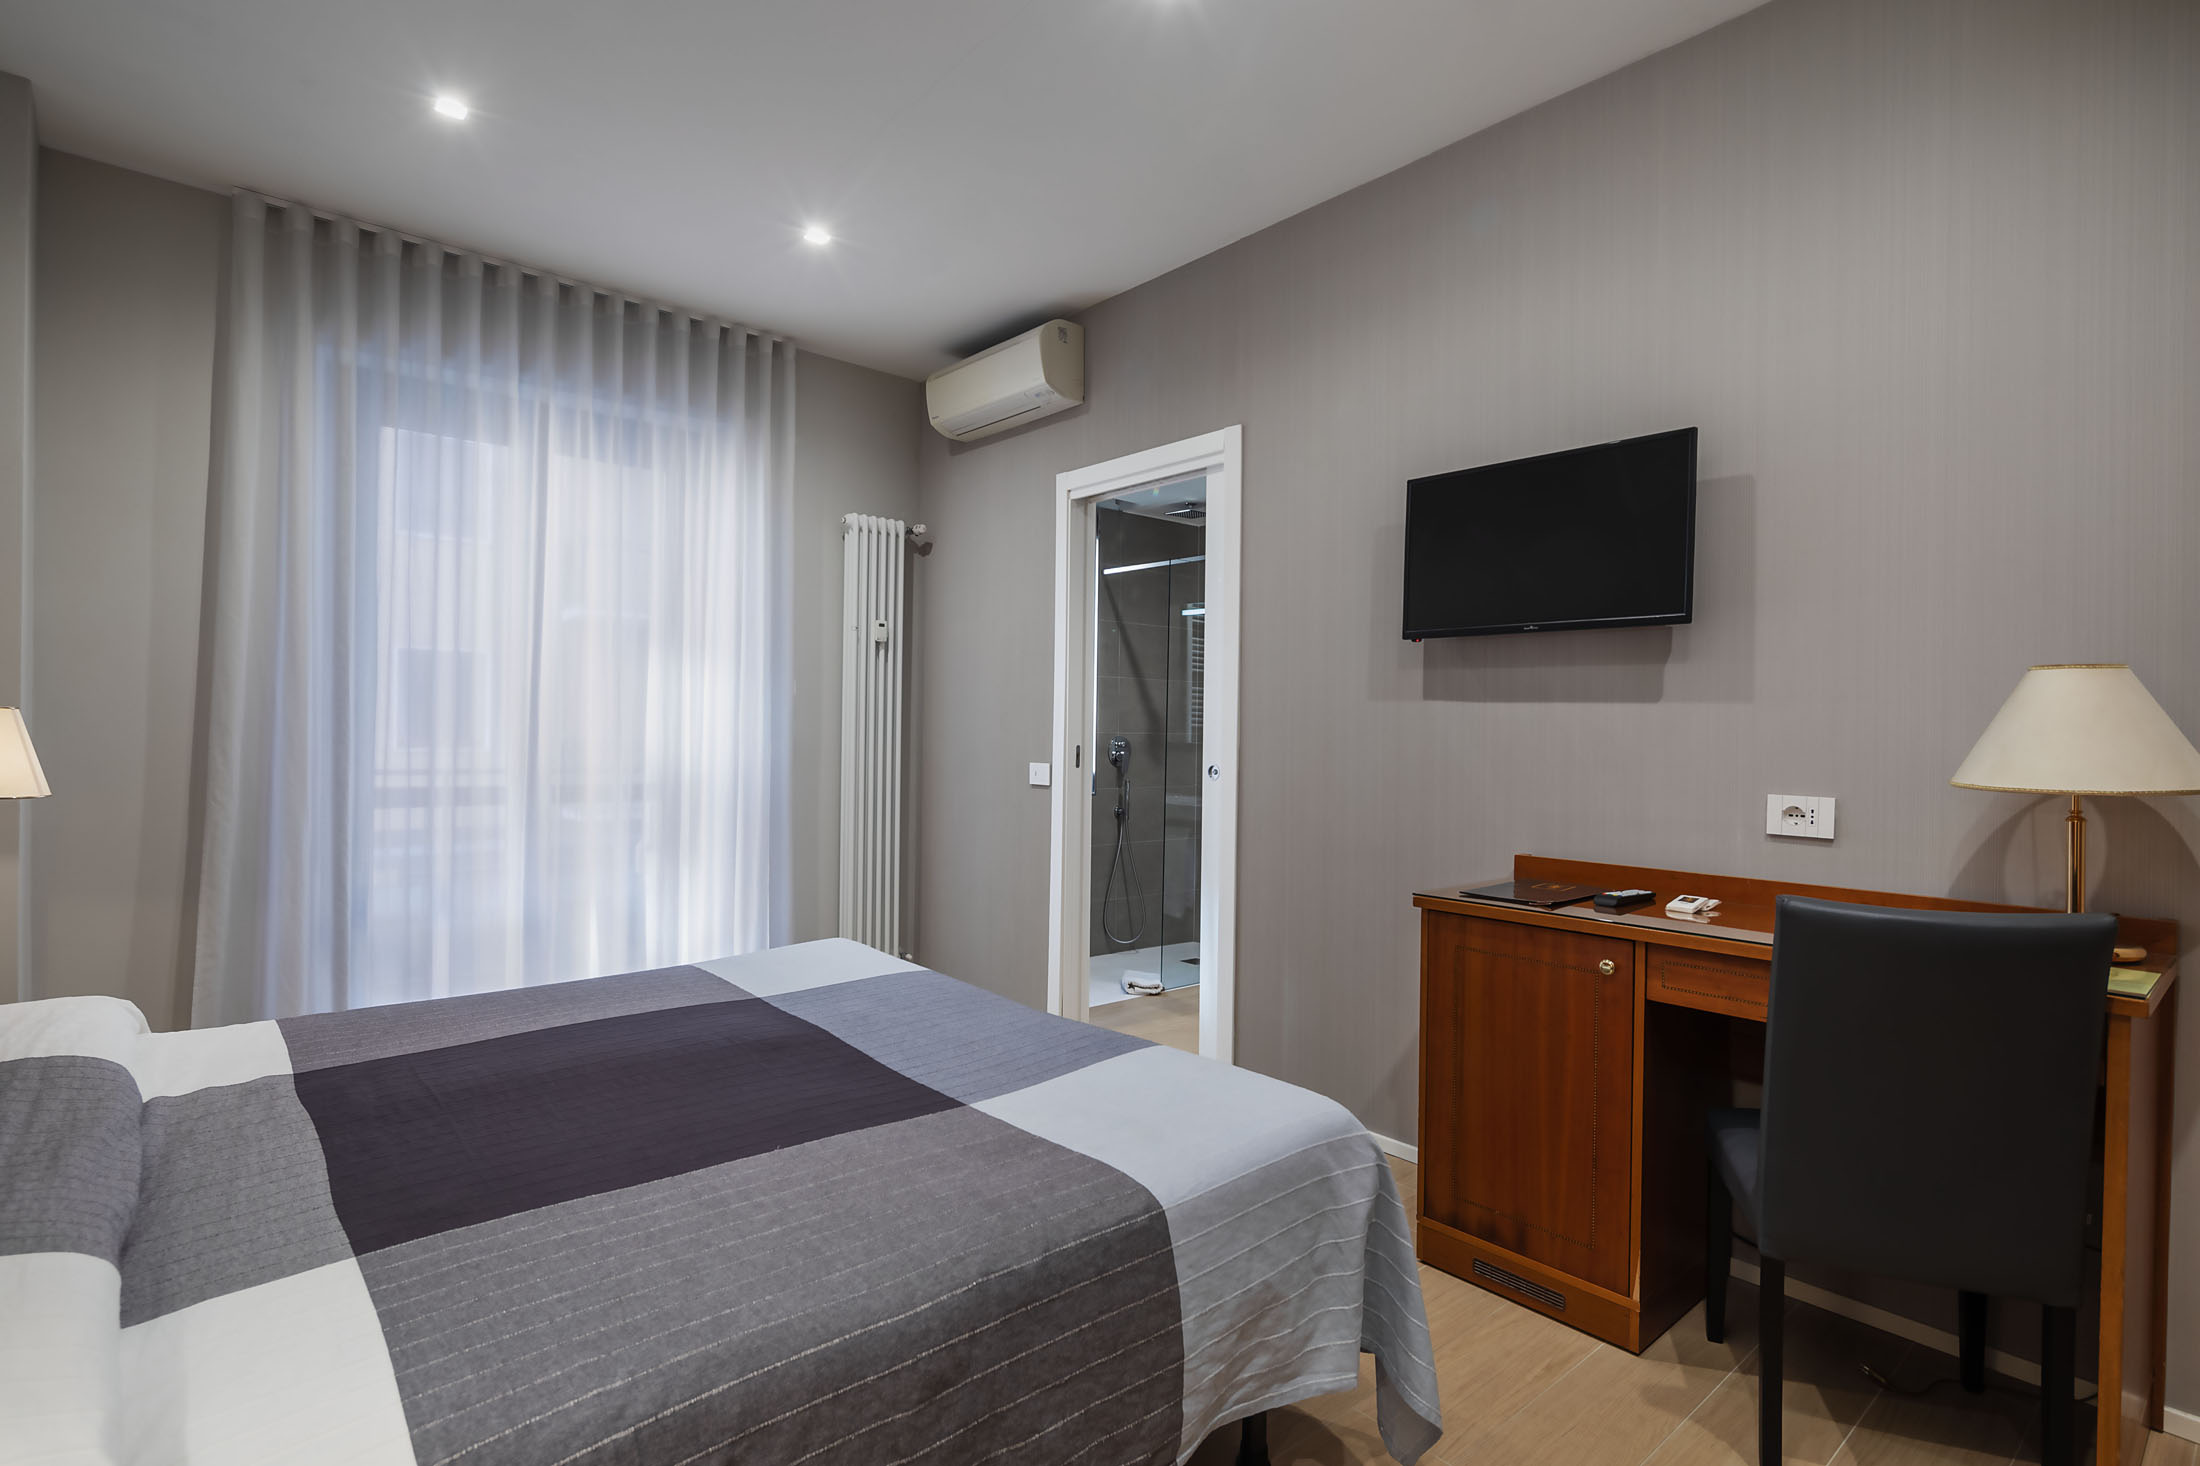 https://www.in-lombardia.it/sites/default/files/accomodation/gallery/105682/37622/excelsior_pavia_18.jpg